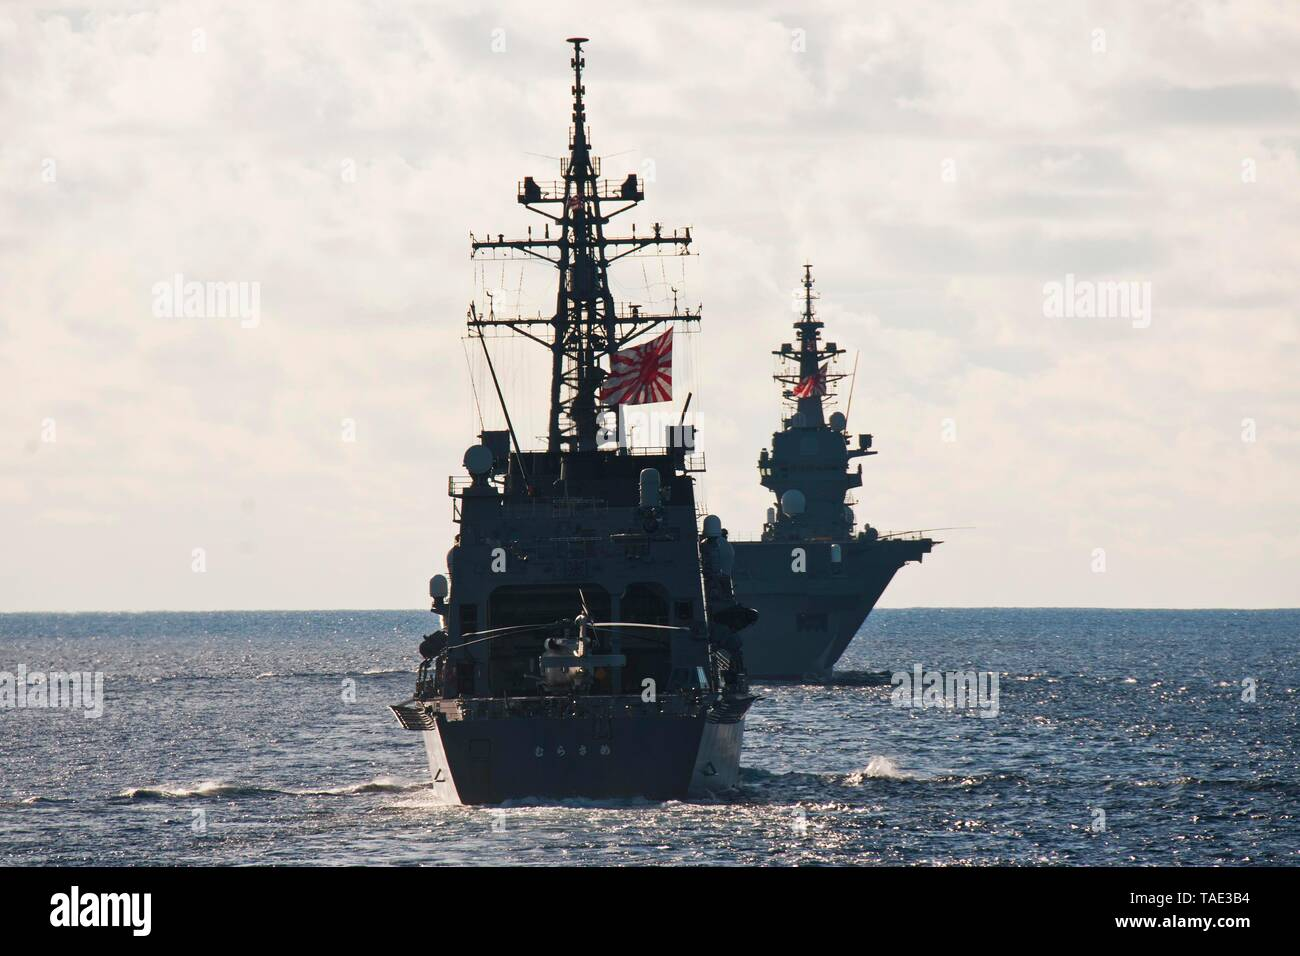 190521-N-VA840-0046 INDIAN OCEAN (May 21, 2019) The Japan Maritime Self Defense Force Izumo-class helicopter destroyer JS Izumo (DDH 183), and the Murasame-class destroyer JS Murasame (DD 101), and the Royal Australian Navy's HMAS Collins (SSG 73) participate in a multi-nation group sail in the Indian Ocean. The Arleigh Burke-class guided-missile destroyer USS William P. Lawrence (DDG 110), the Henry J. Kaiser-class fleet replenishment oiler USNS Pecos (T-AO 197) sailed in formation, alongside ships and aircraft from the French, Japanese, and Australian navies. William P. Lawrence is deployed  - Stock Image